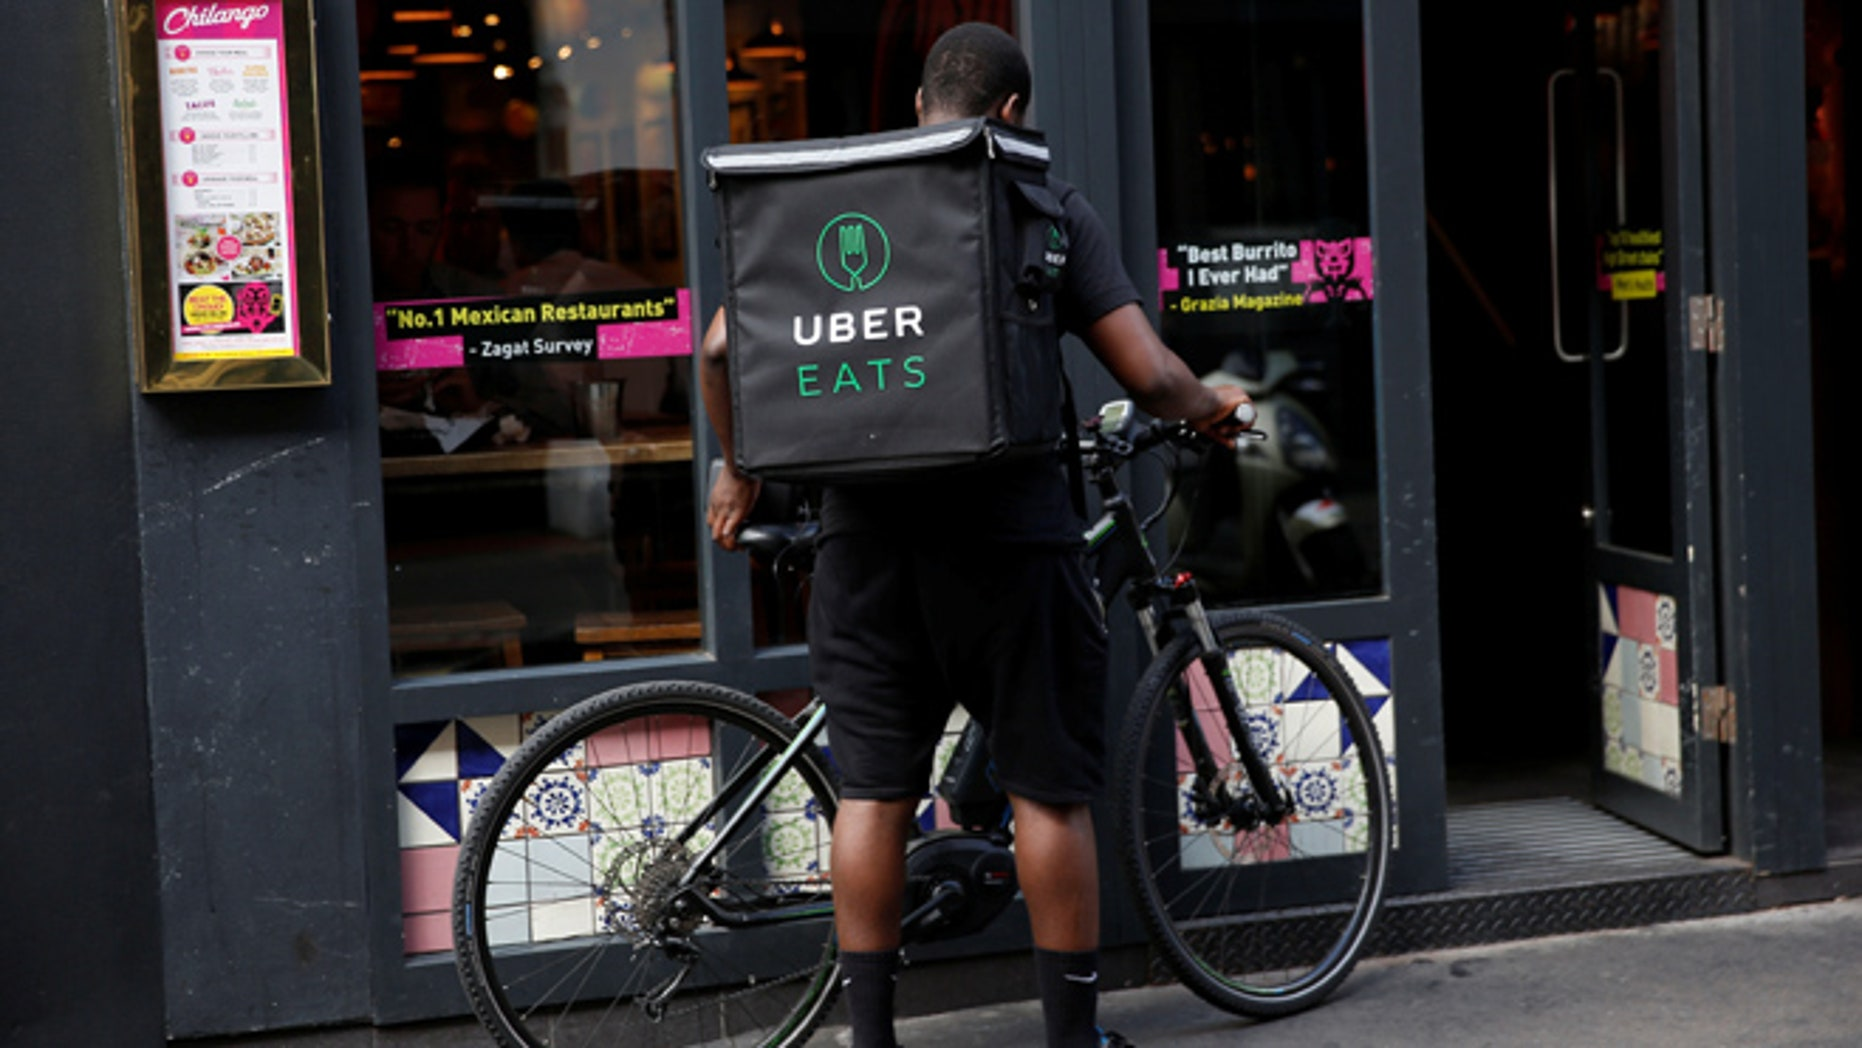 New York City Lawsuit Claims Uber Keeping Food Delivery Tips Fox News